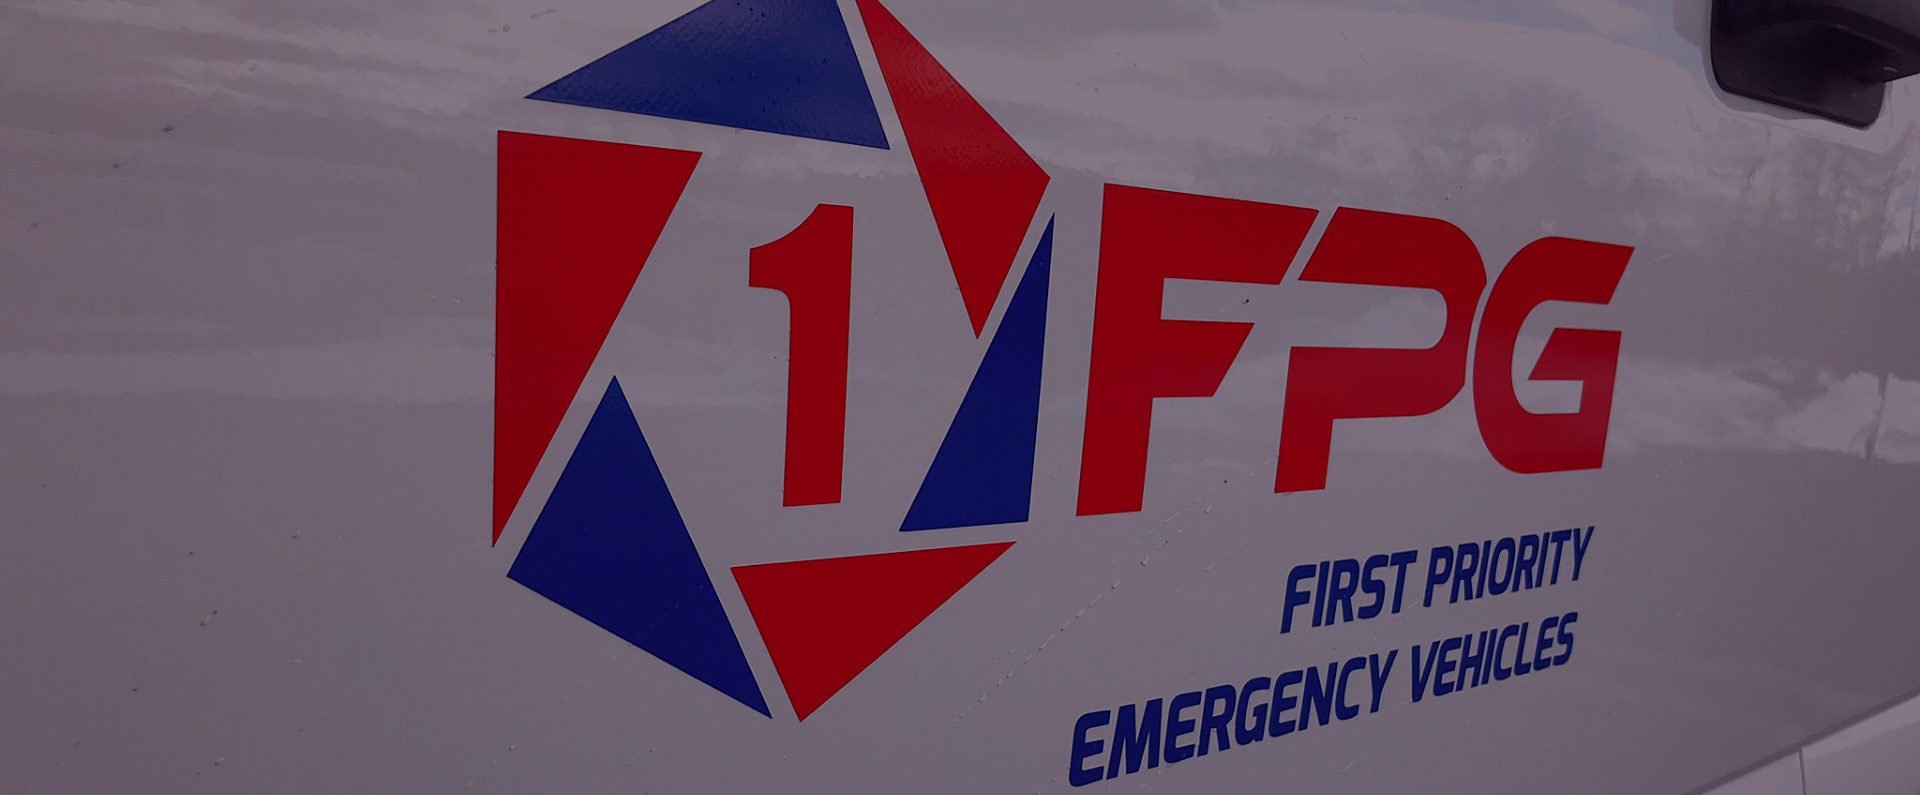 First Priority Emergency Vehicles Available Vehicle Conversions and Specialty Vehicles